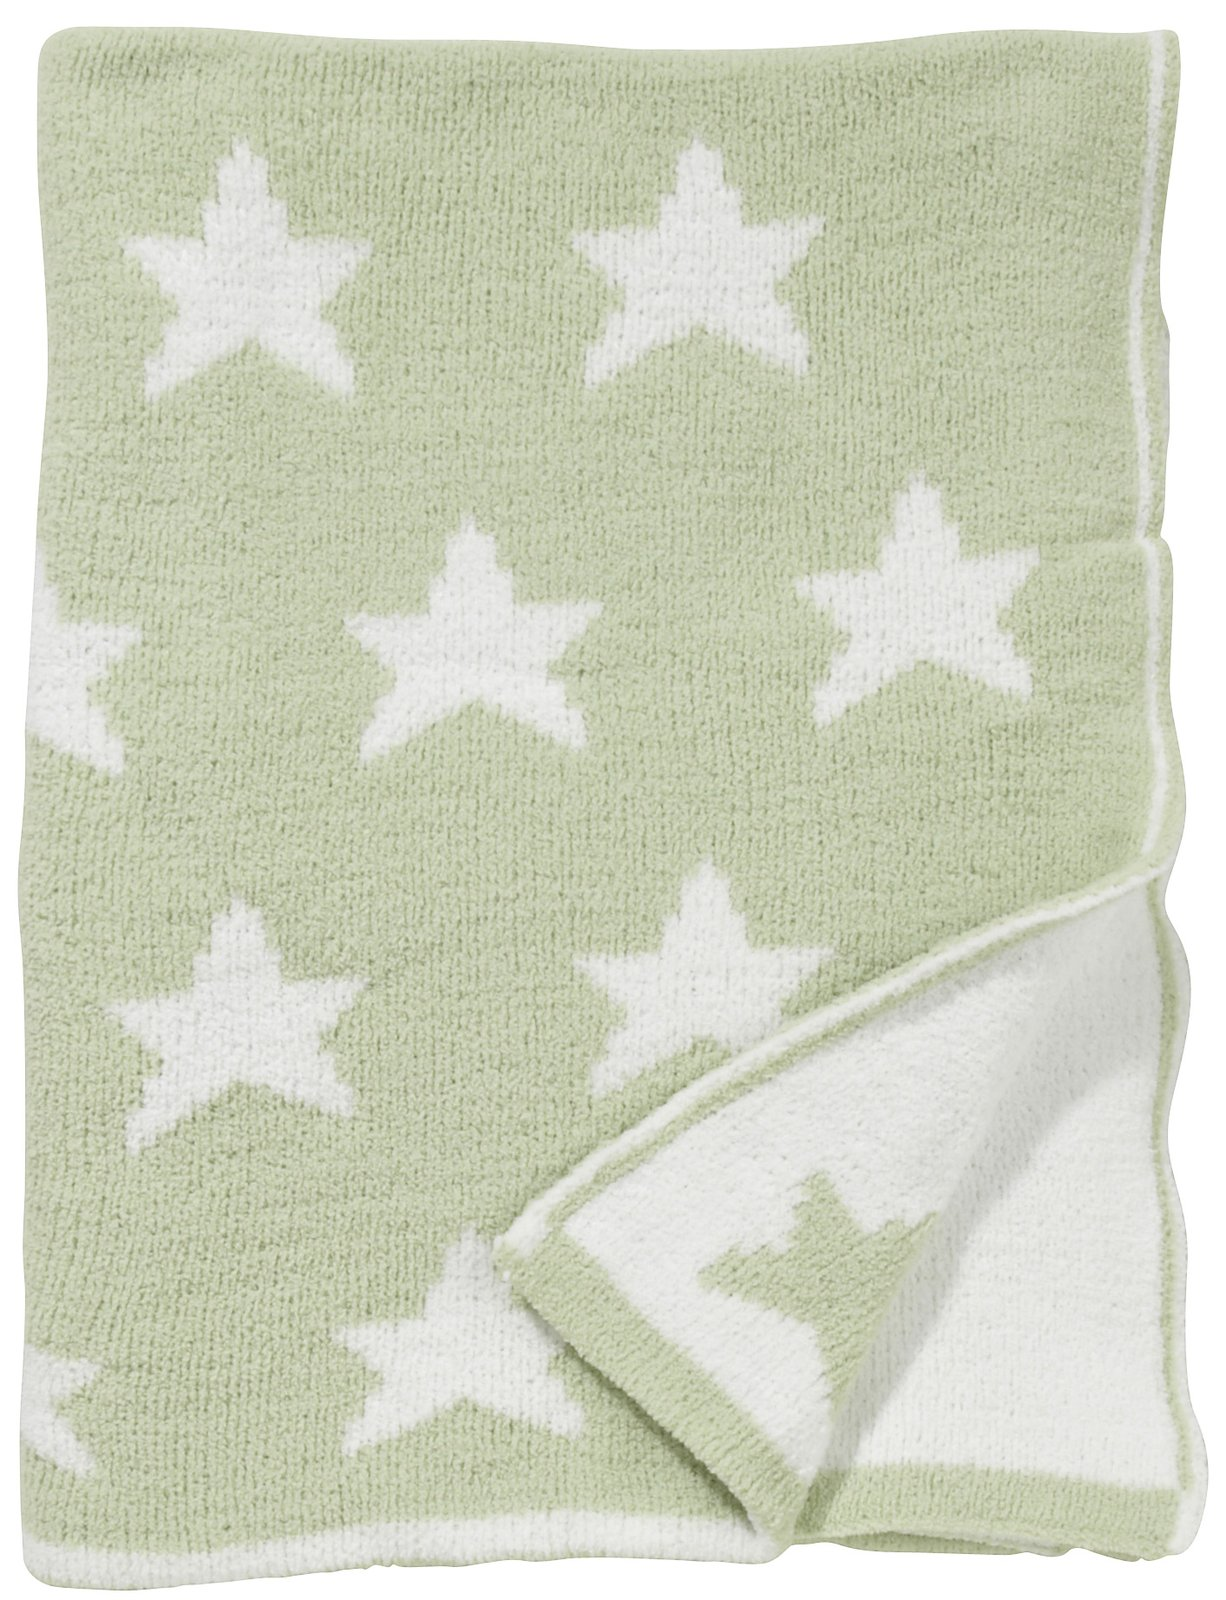 dark sea green Chenille Blanket with star motif for blanket ideas